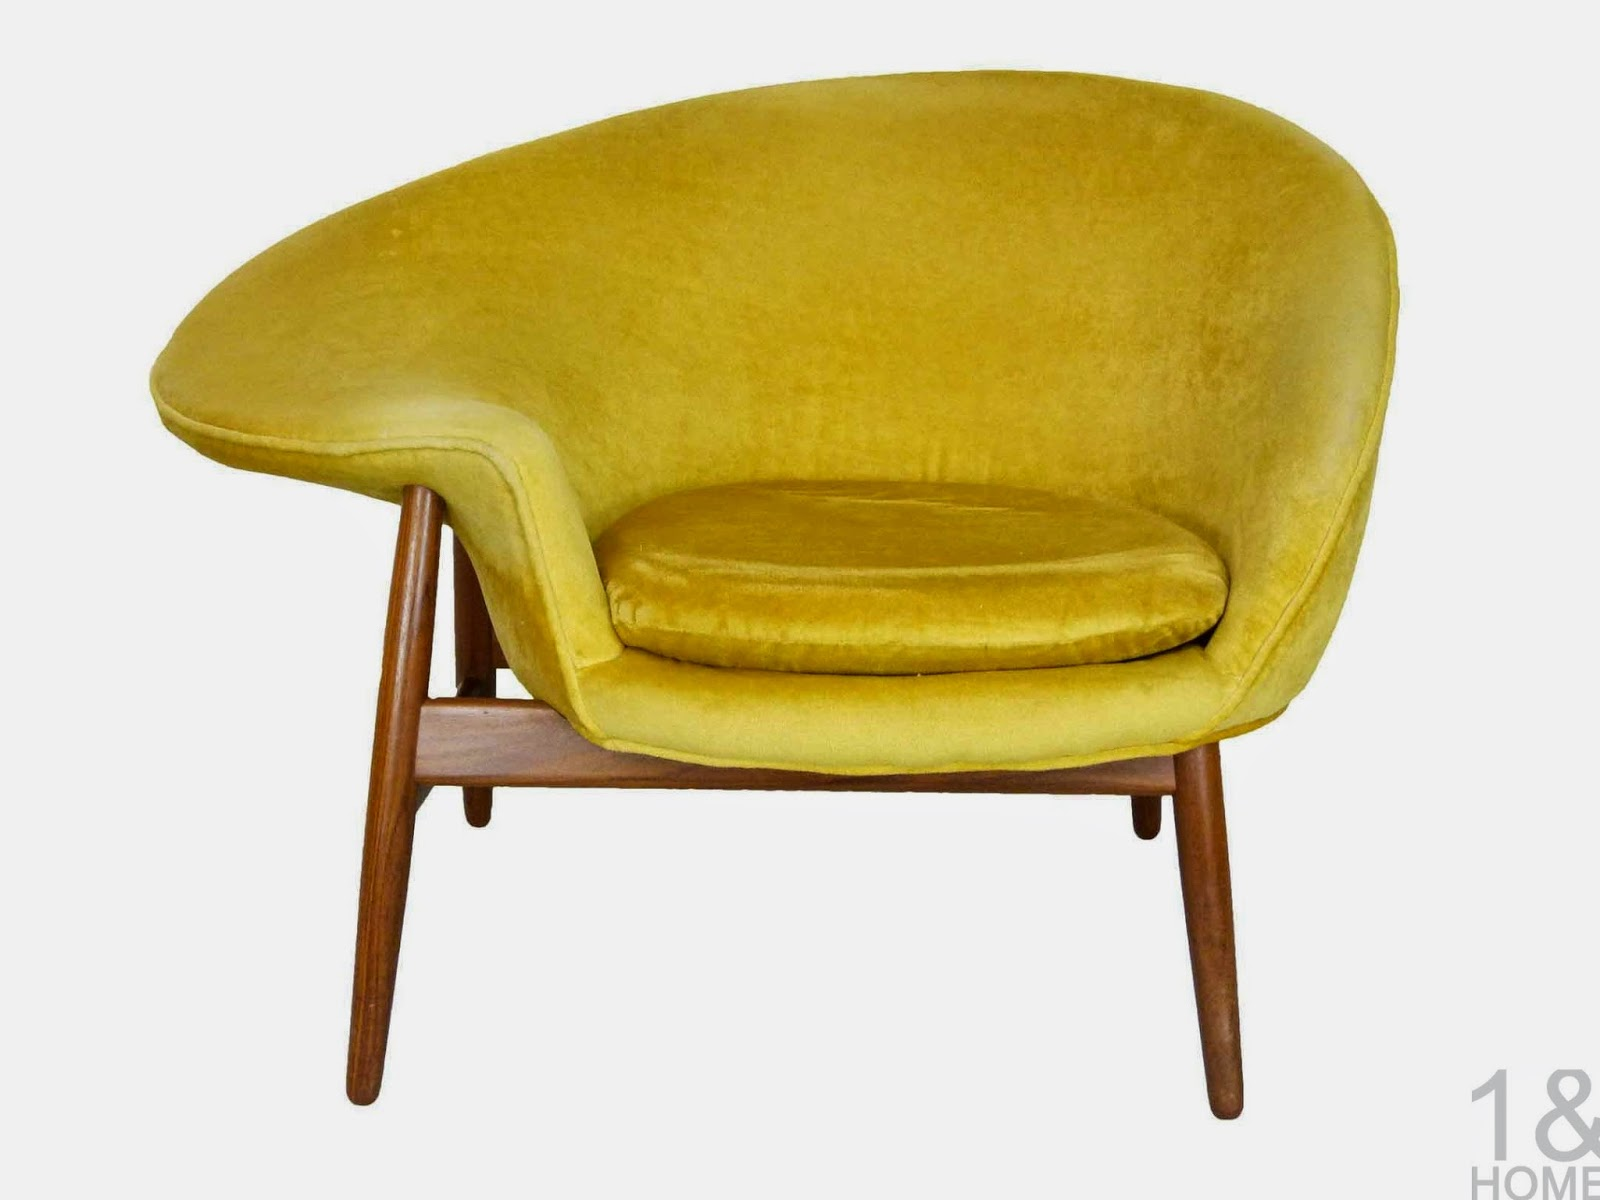 Yellow Egg Chair Modern Mid Century Danish Vintage Furniture Shop Used